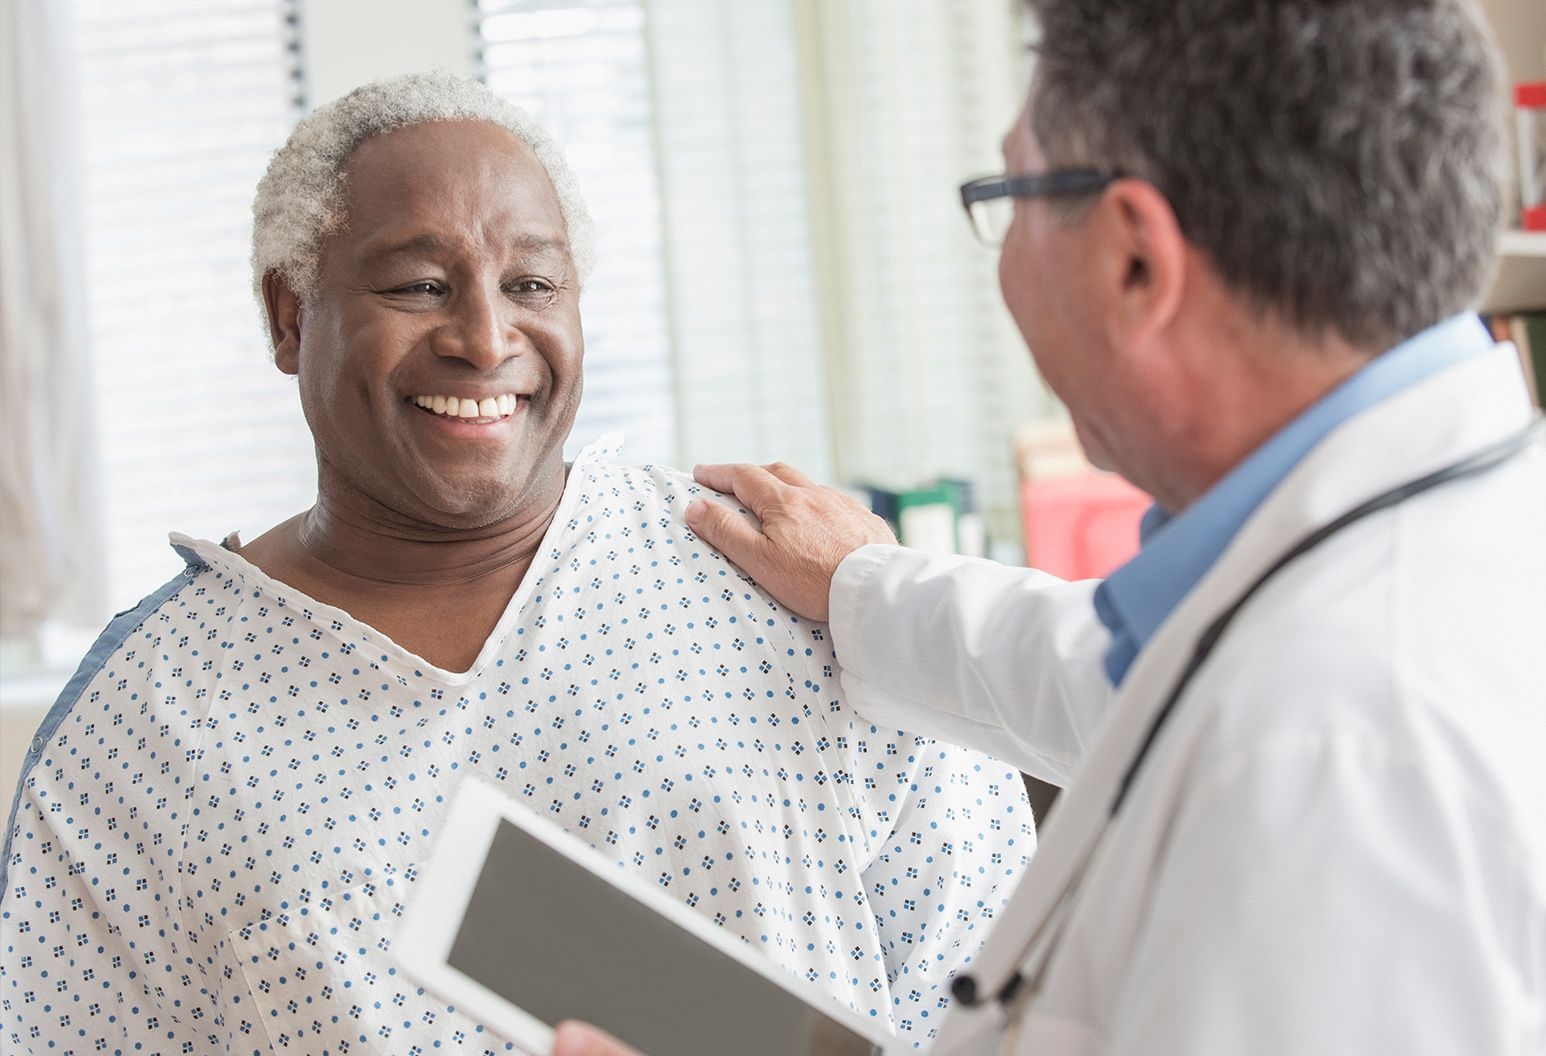 Man smiles as doctor touches his shoulder